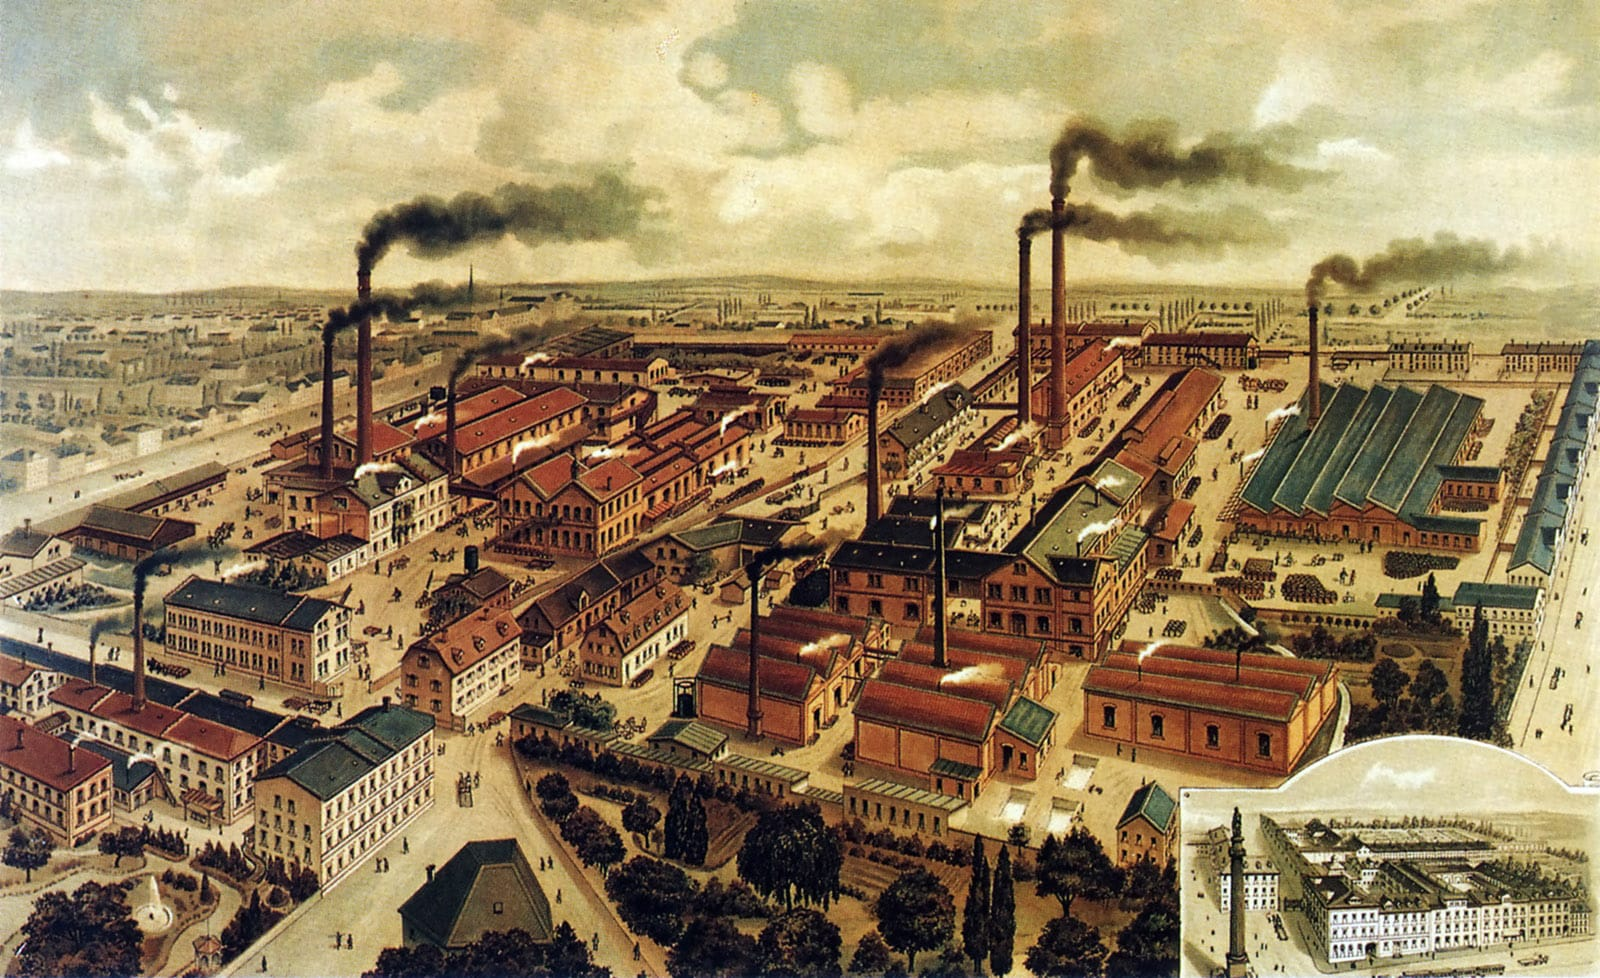 The Merck factory in Darmstadt - 1892 - home to the world's first phara-chemical company